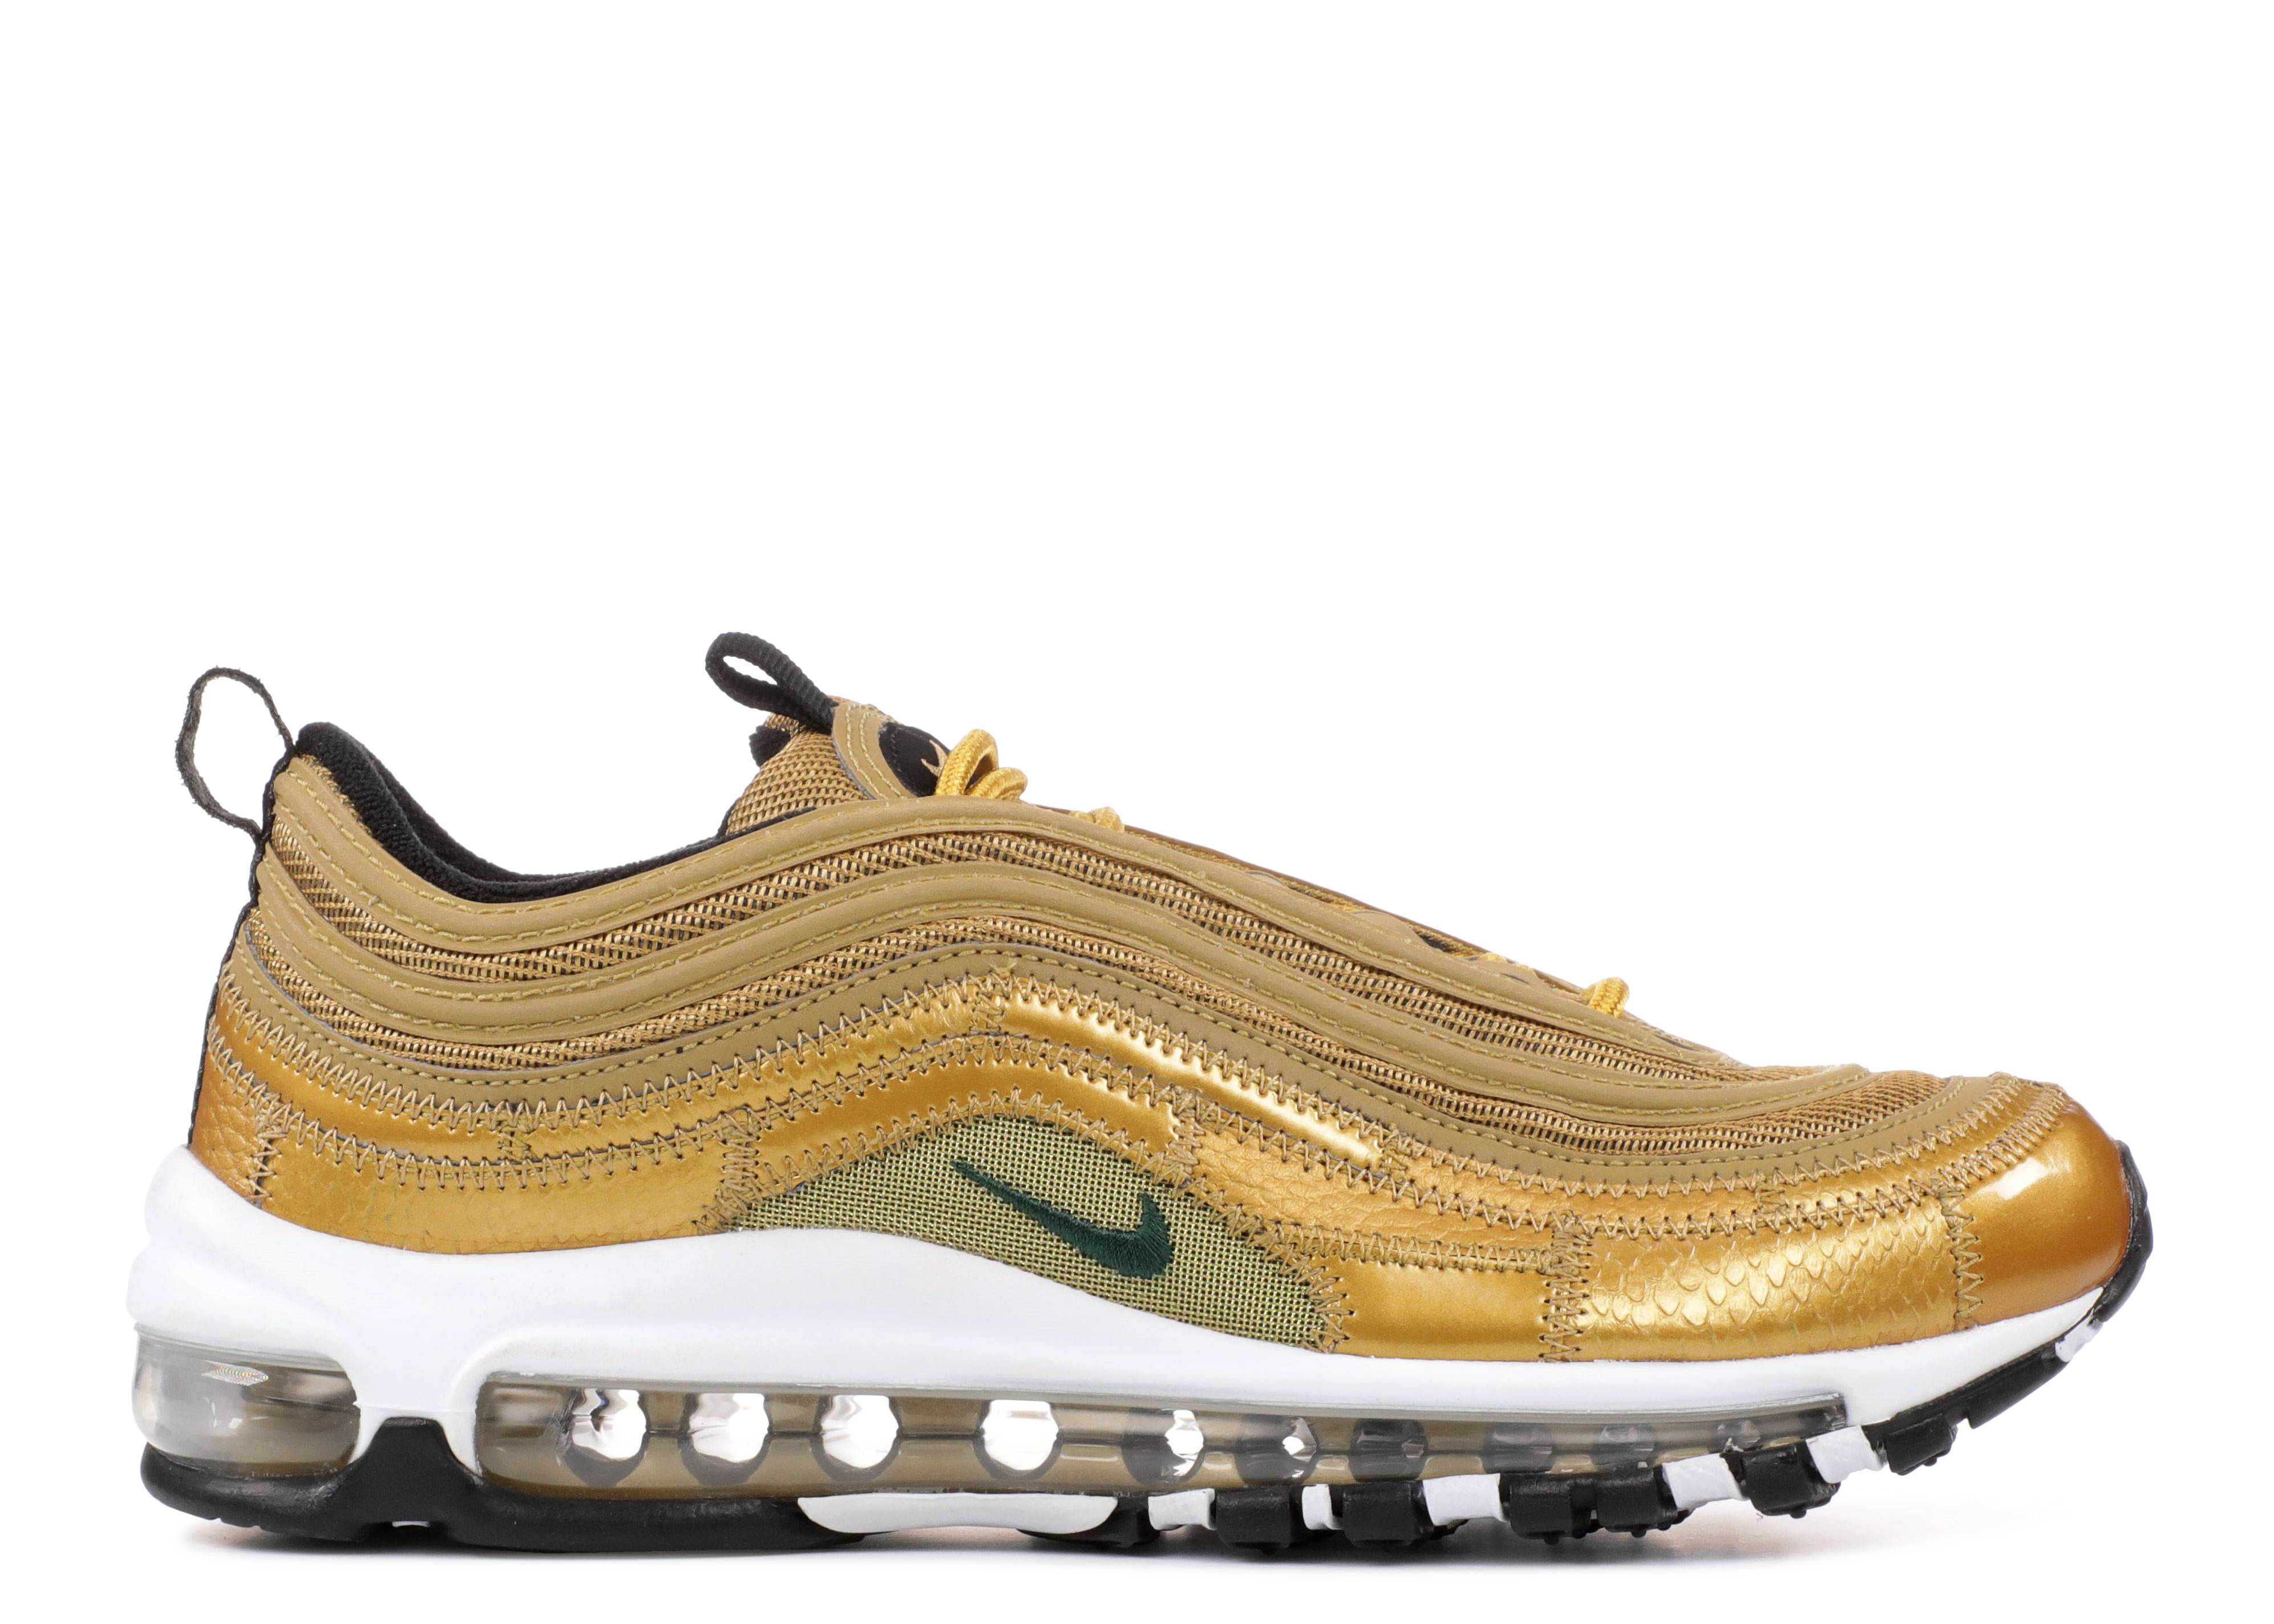 Nike Patike Nike Air Max 97 Cr7